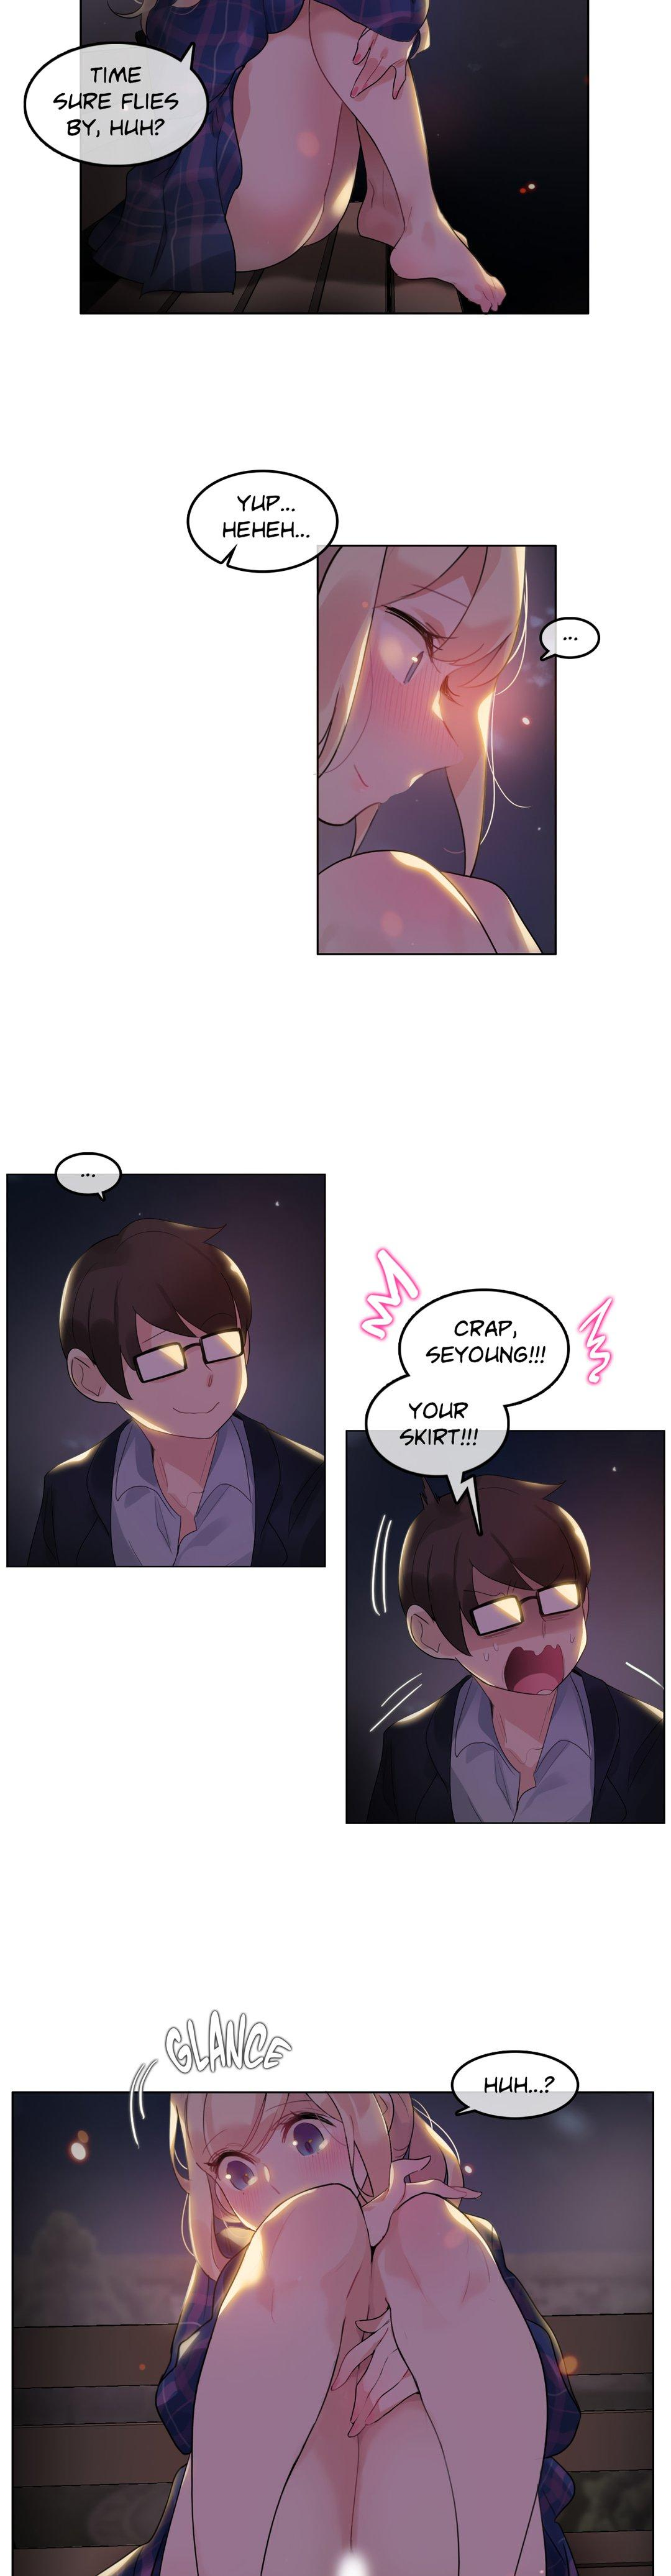 A Pervert's Daily Life Ch. 35-71 224